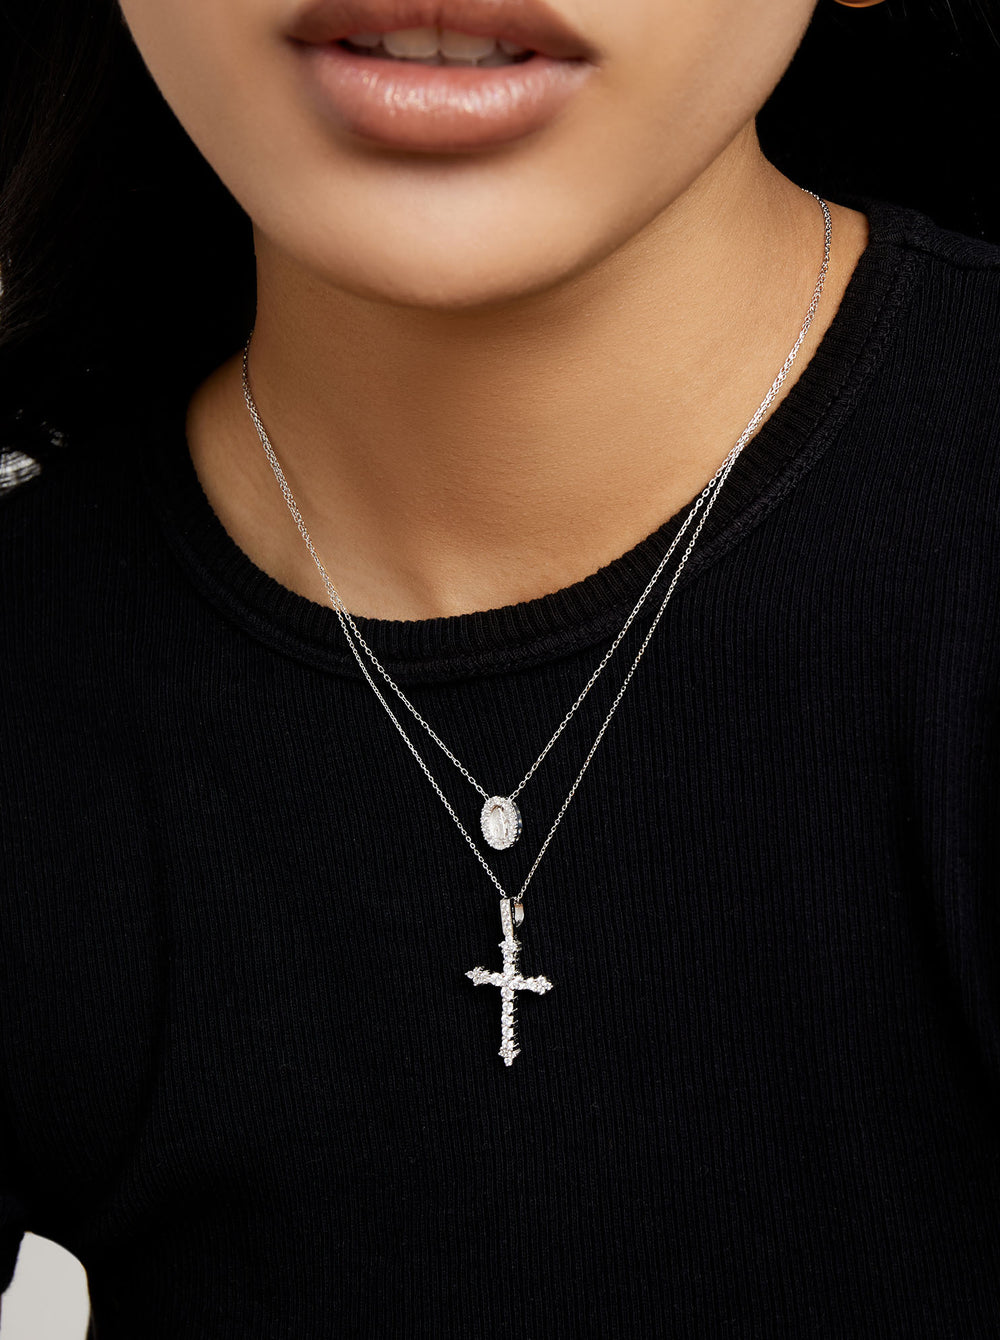 THE DANIELLA PAVE' CROSS NECKLACE